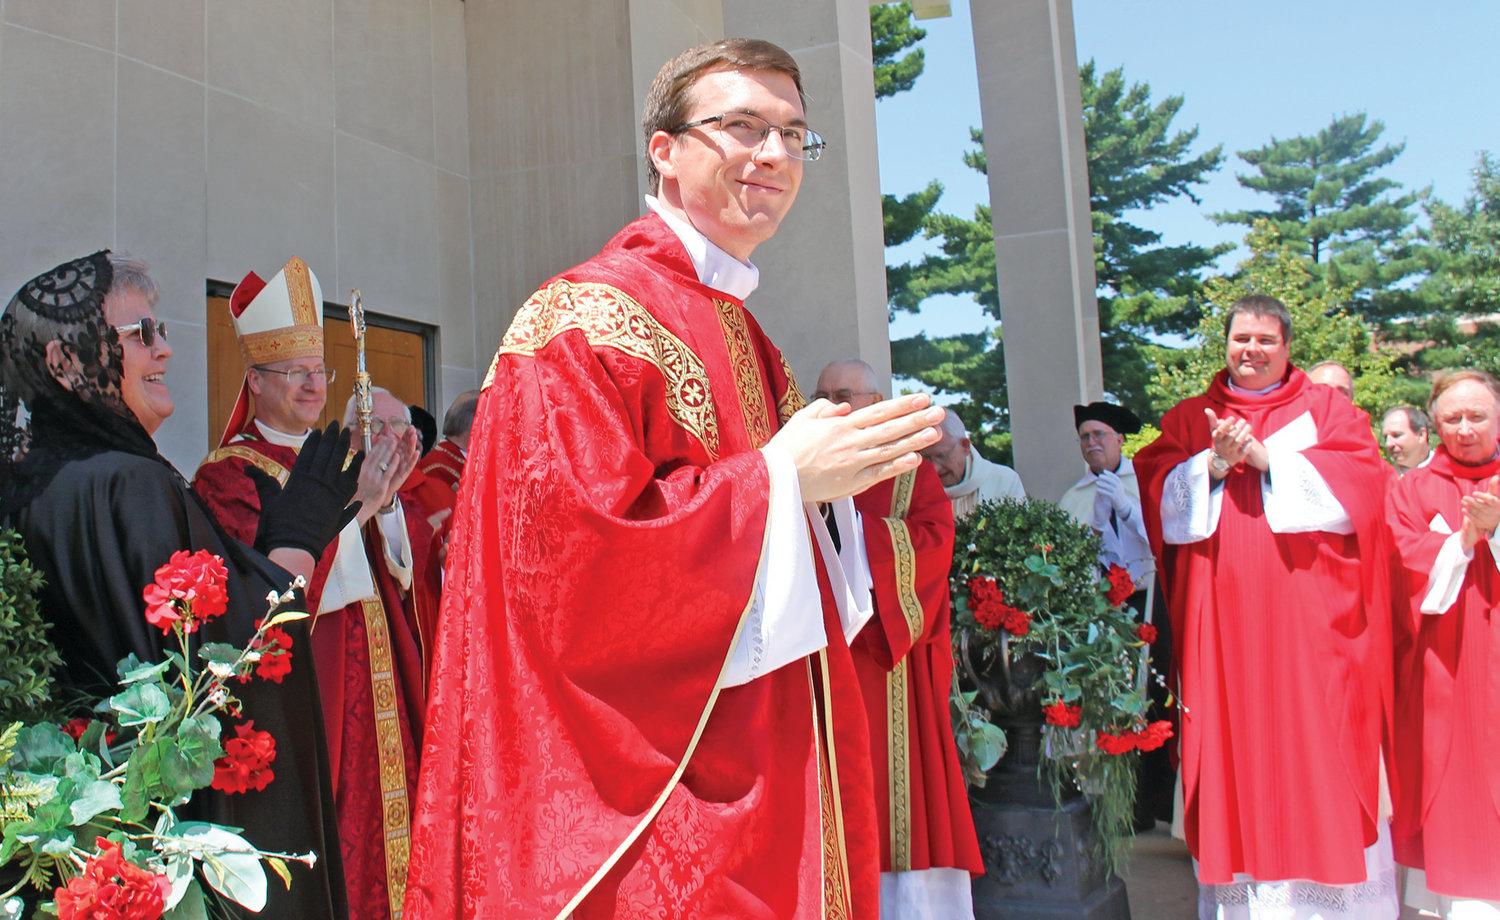 As his brother priests applaud, Father Brad Berhorst steps out of the Cathedral of St. Joseph in Jefferson City following his ordination to the Priesthood on June 29.